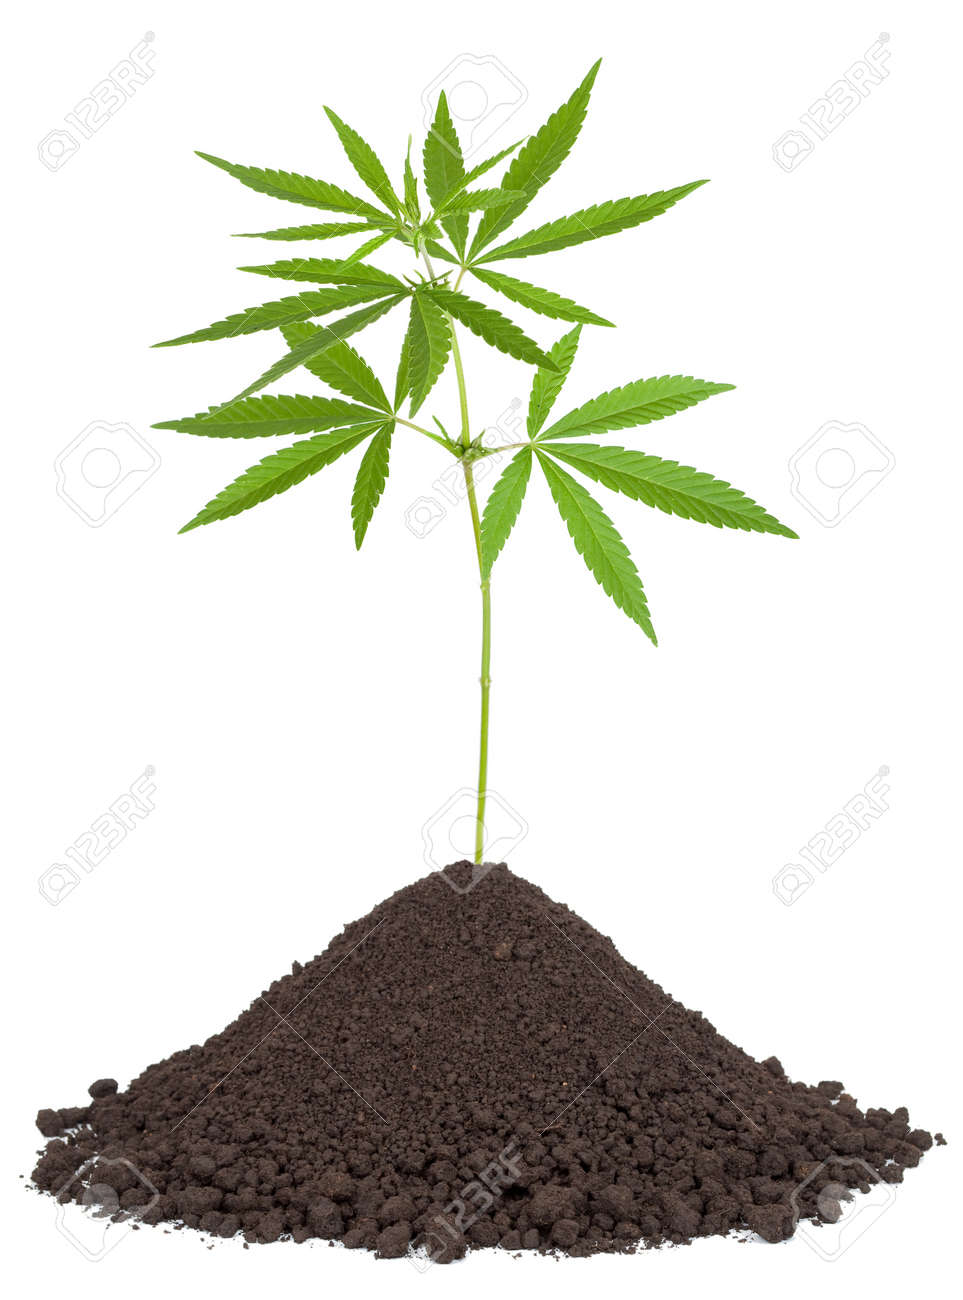 Cannabis plant in soil Stock Photo - 15467773